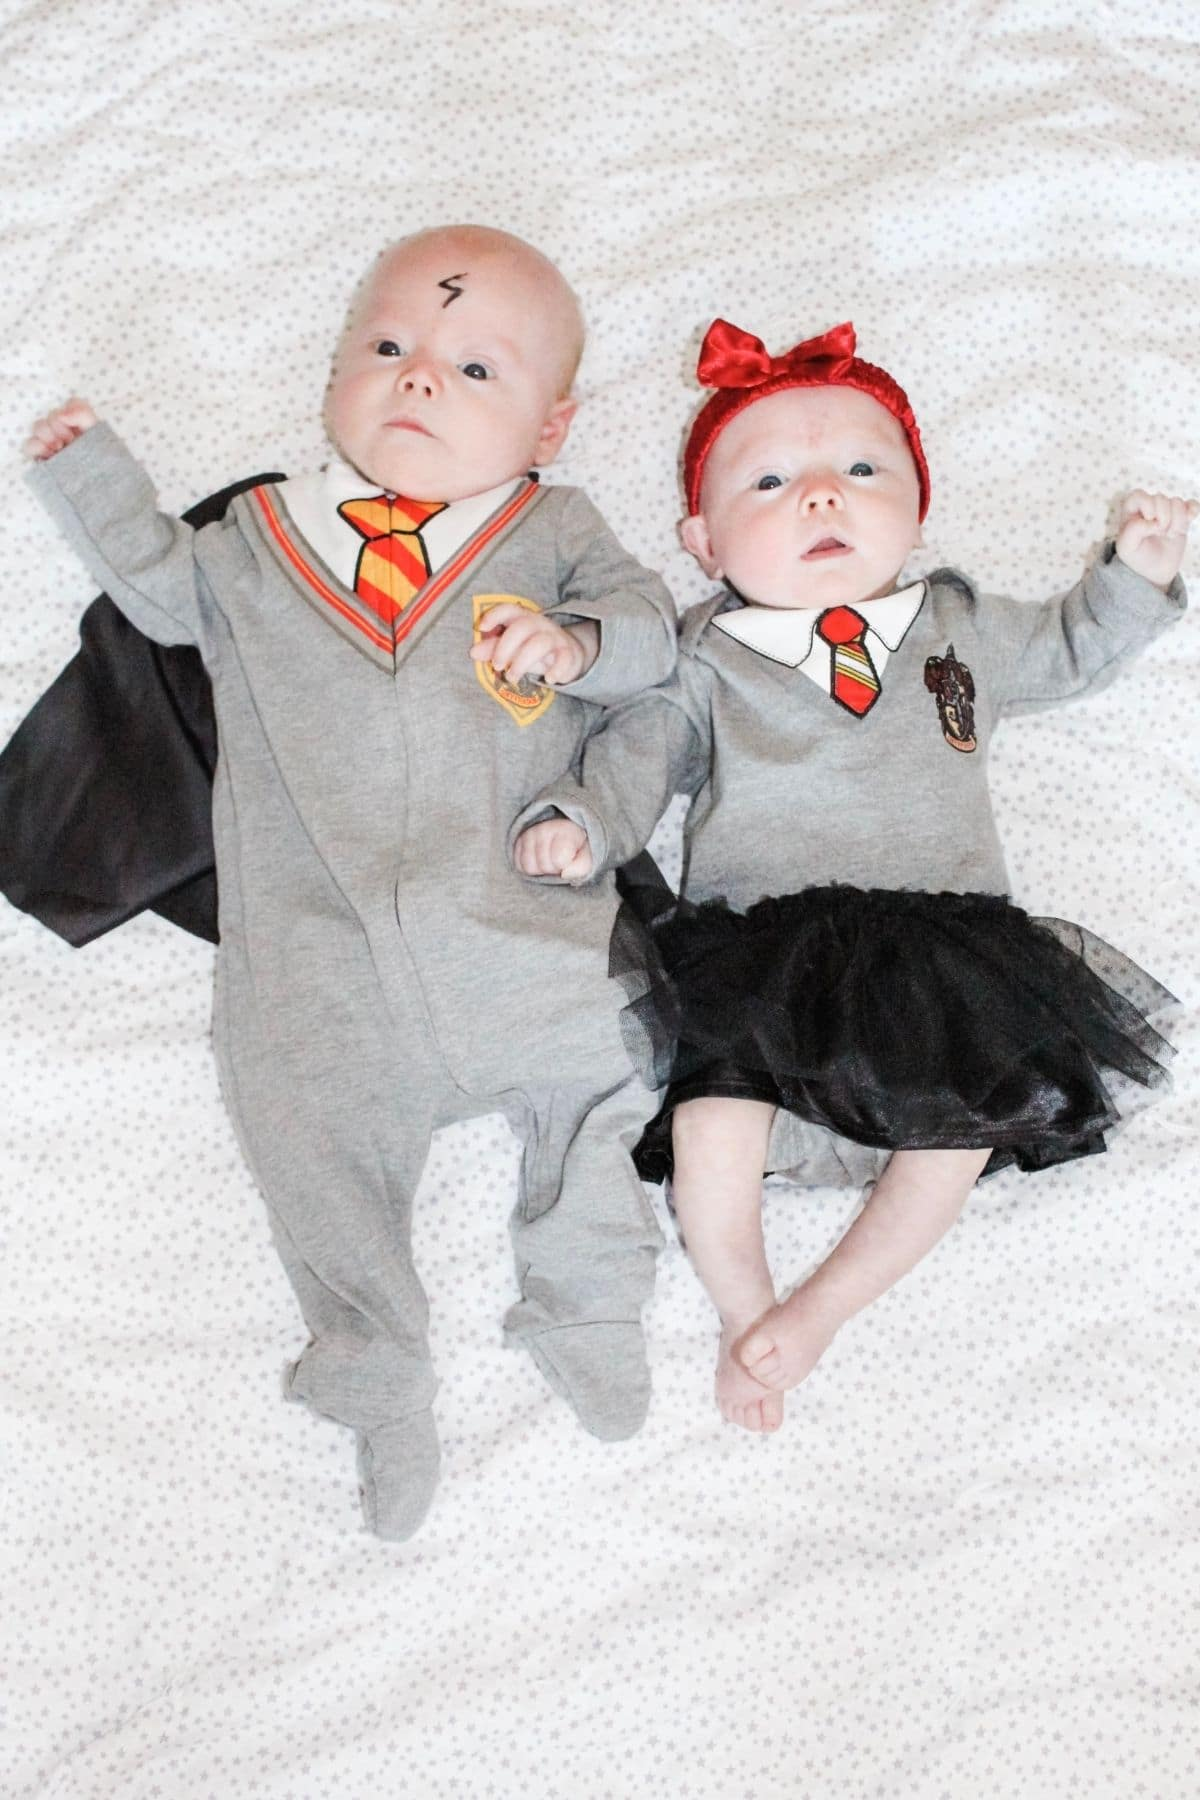 boy girl twin babies wearing harry potter halloween costumes laying on a white blanket